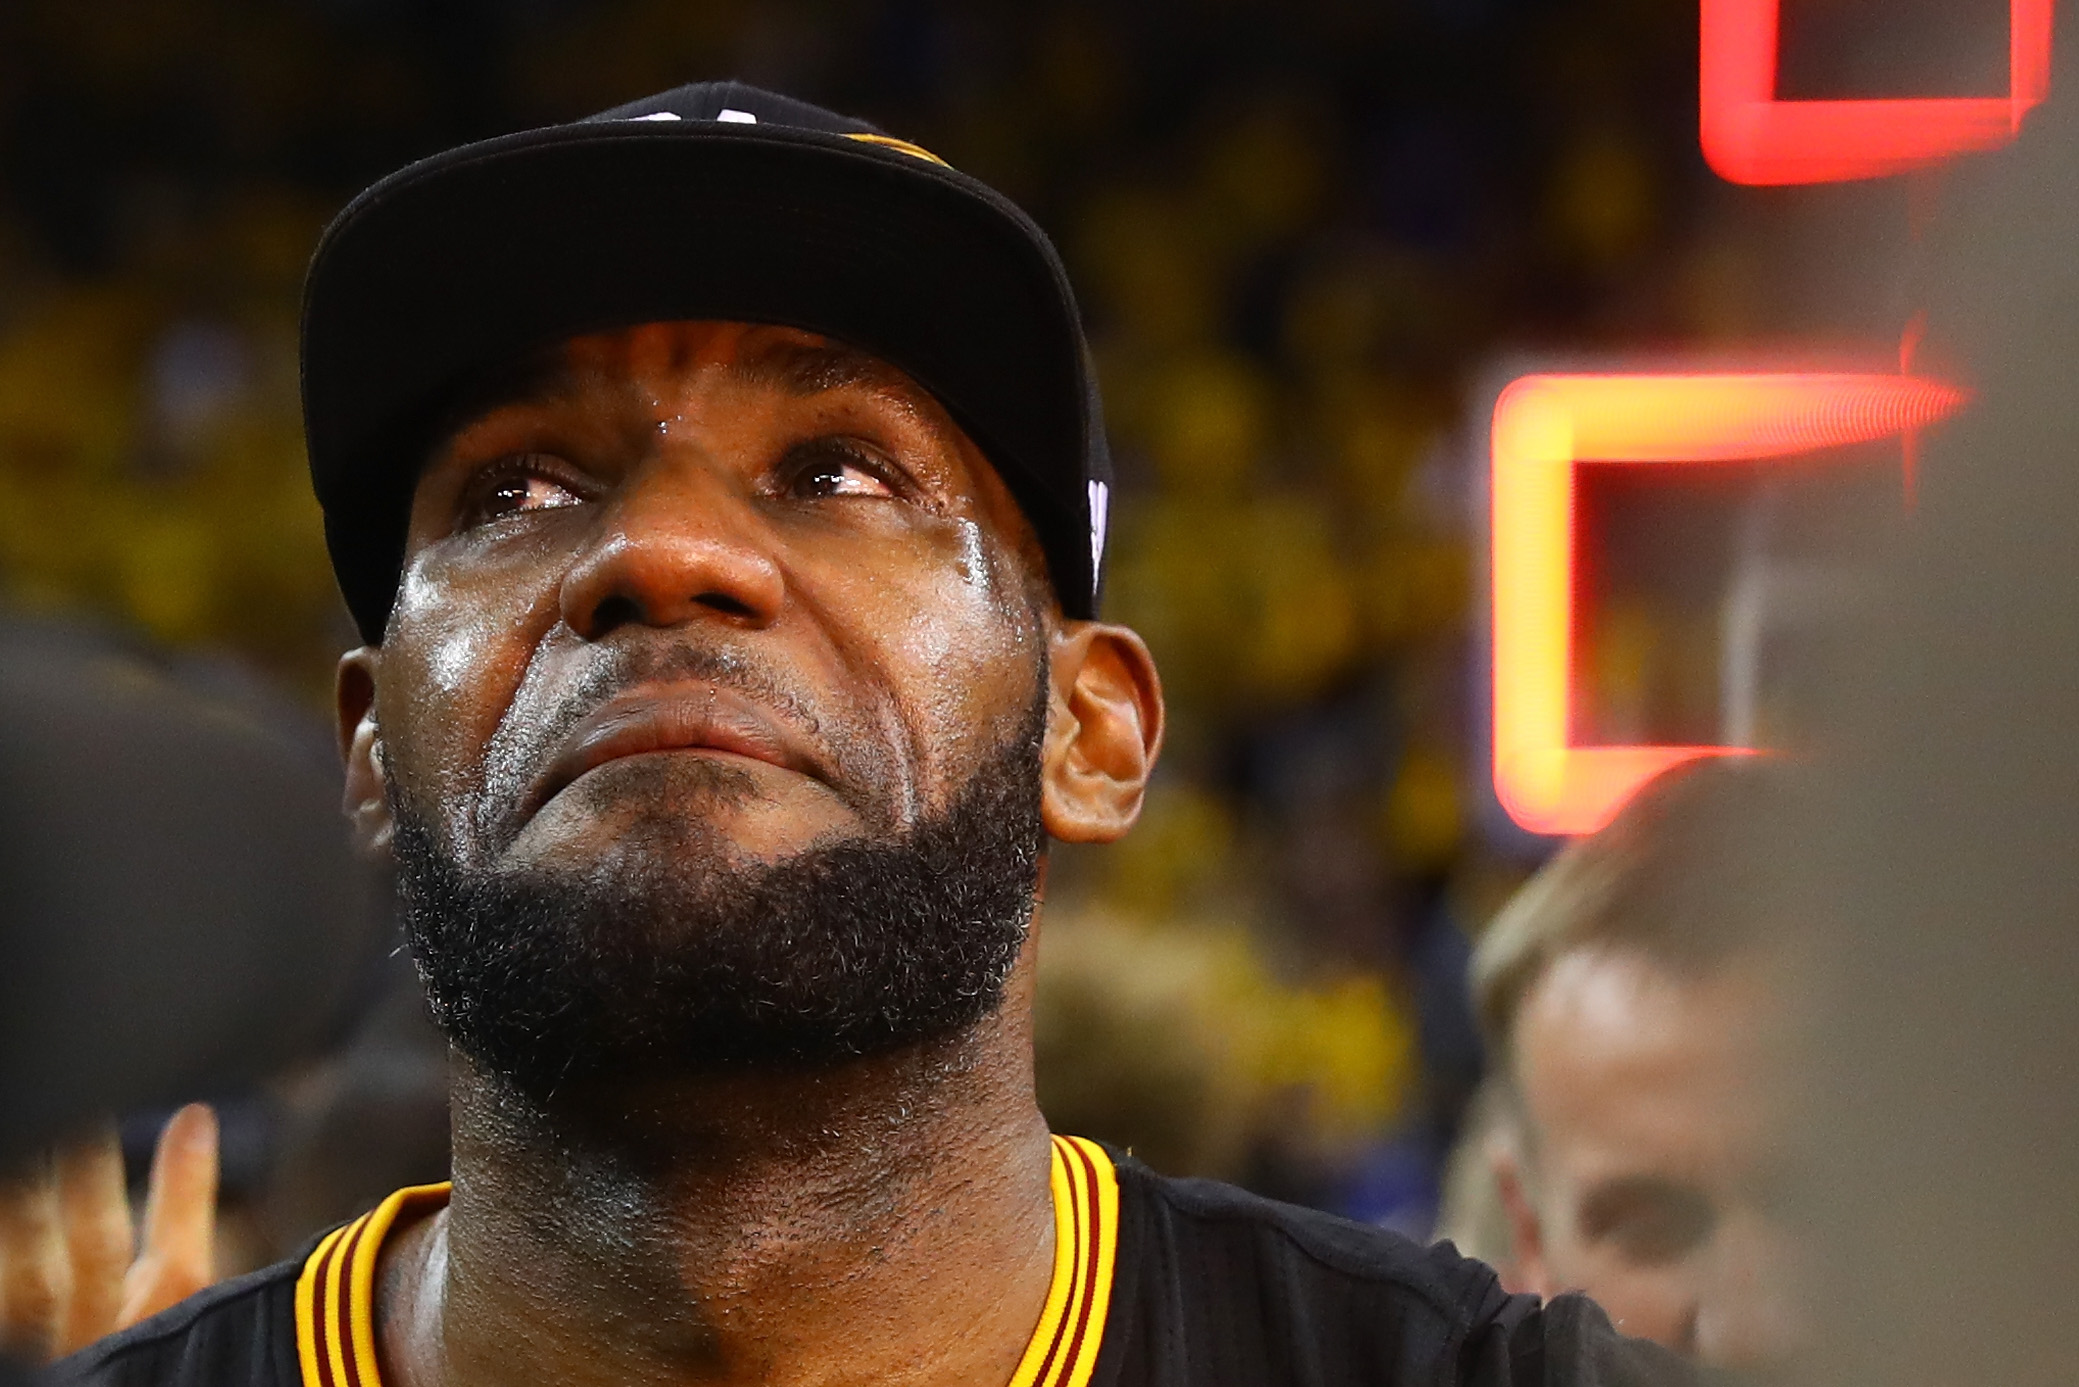 OAKLAND, CA - JUNE 19:  LeBron James #23 of the Cleveland Cavaliers reacts after defeating the Golden State Warriors 93-89 in Game 7 of the 2016 NBA Finals at ORACLE Arena on June 19, 2016 in Oakland, California. NOTE TO USER: User expressly acknowledges and agrees that, by downloading and or using this photograph, User is consenting to the terms and conditions of the Getty Images License Agreement.  (Photo by Ezra Shaw/Getty Images)